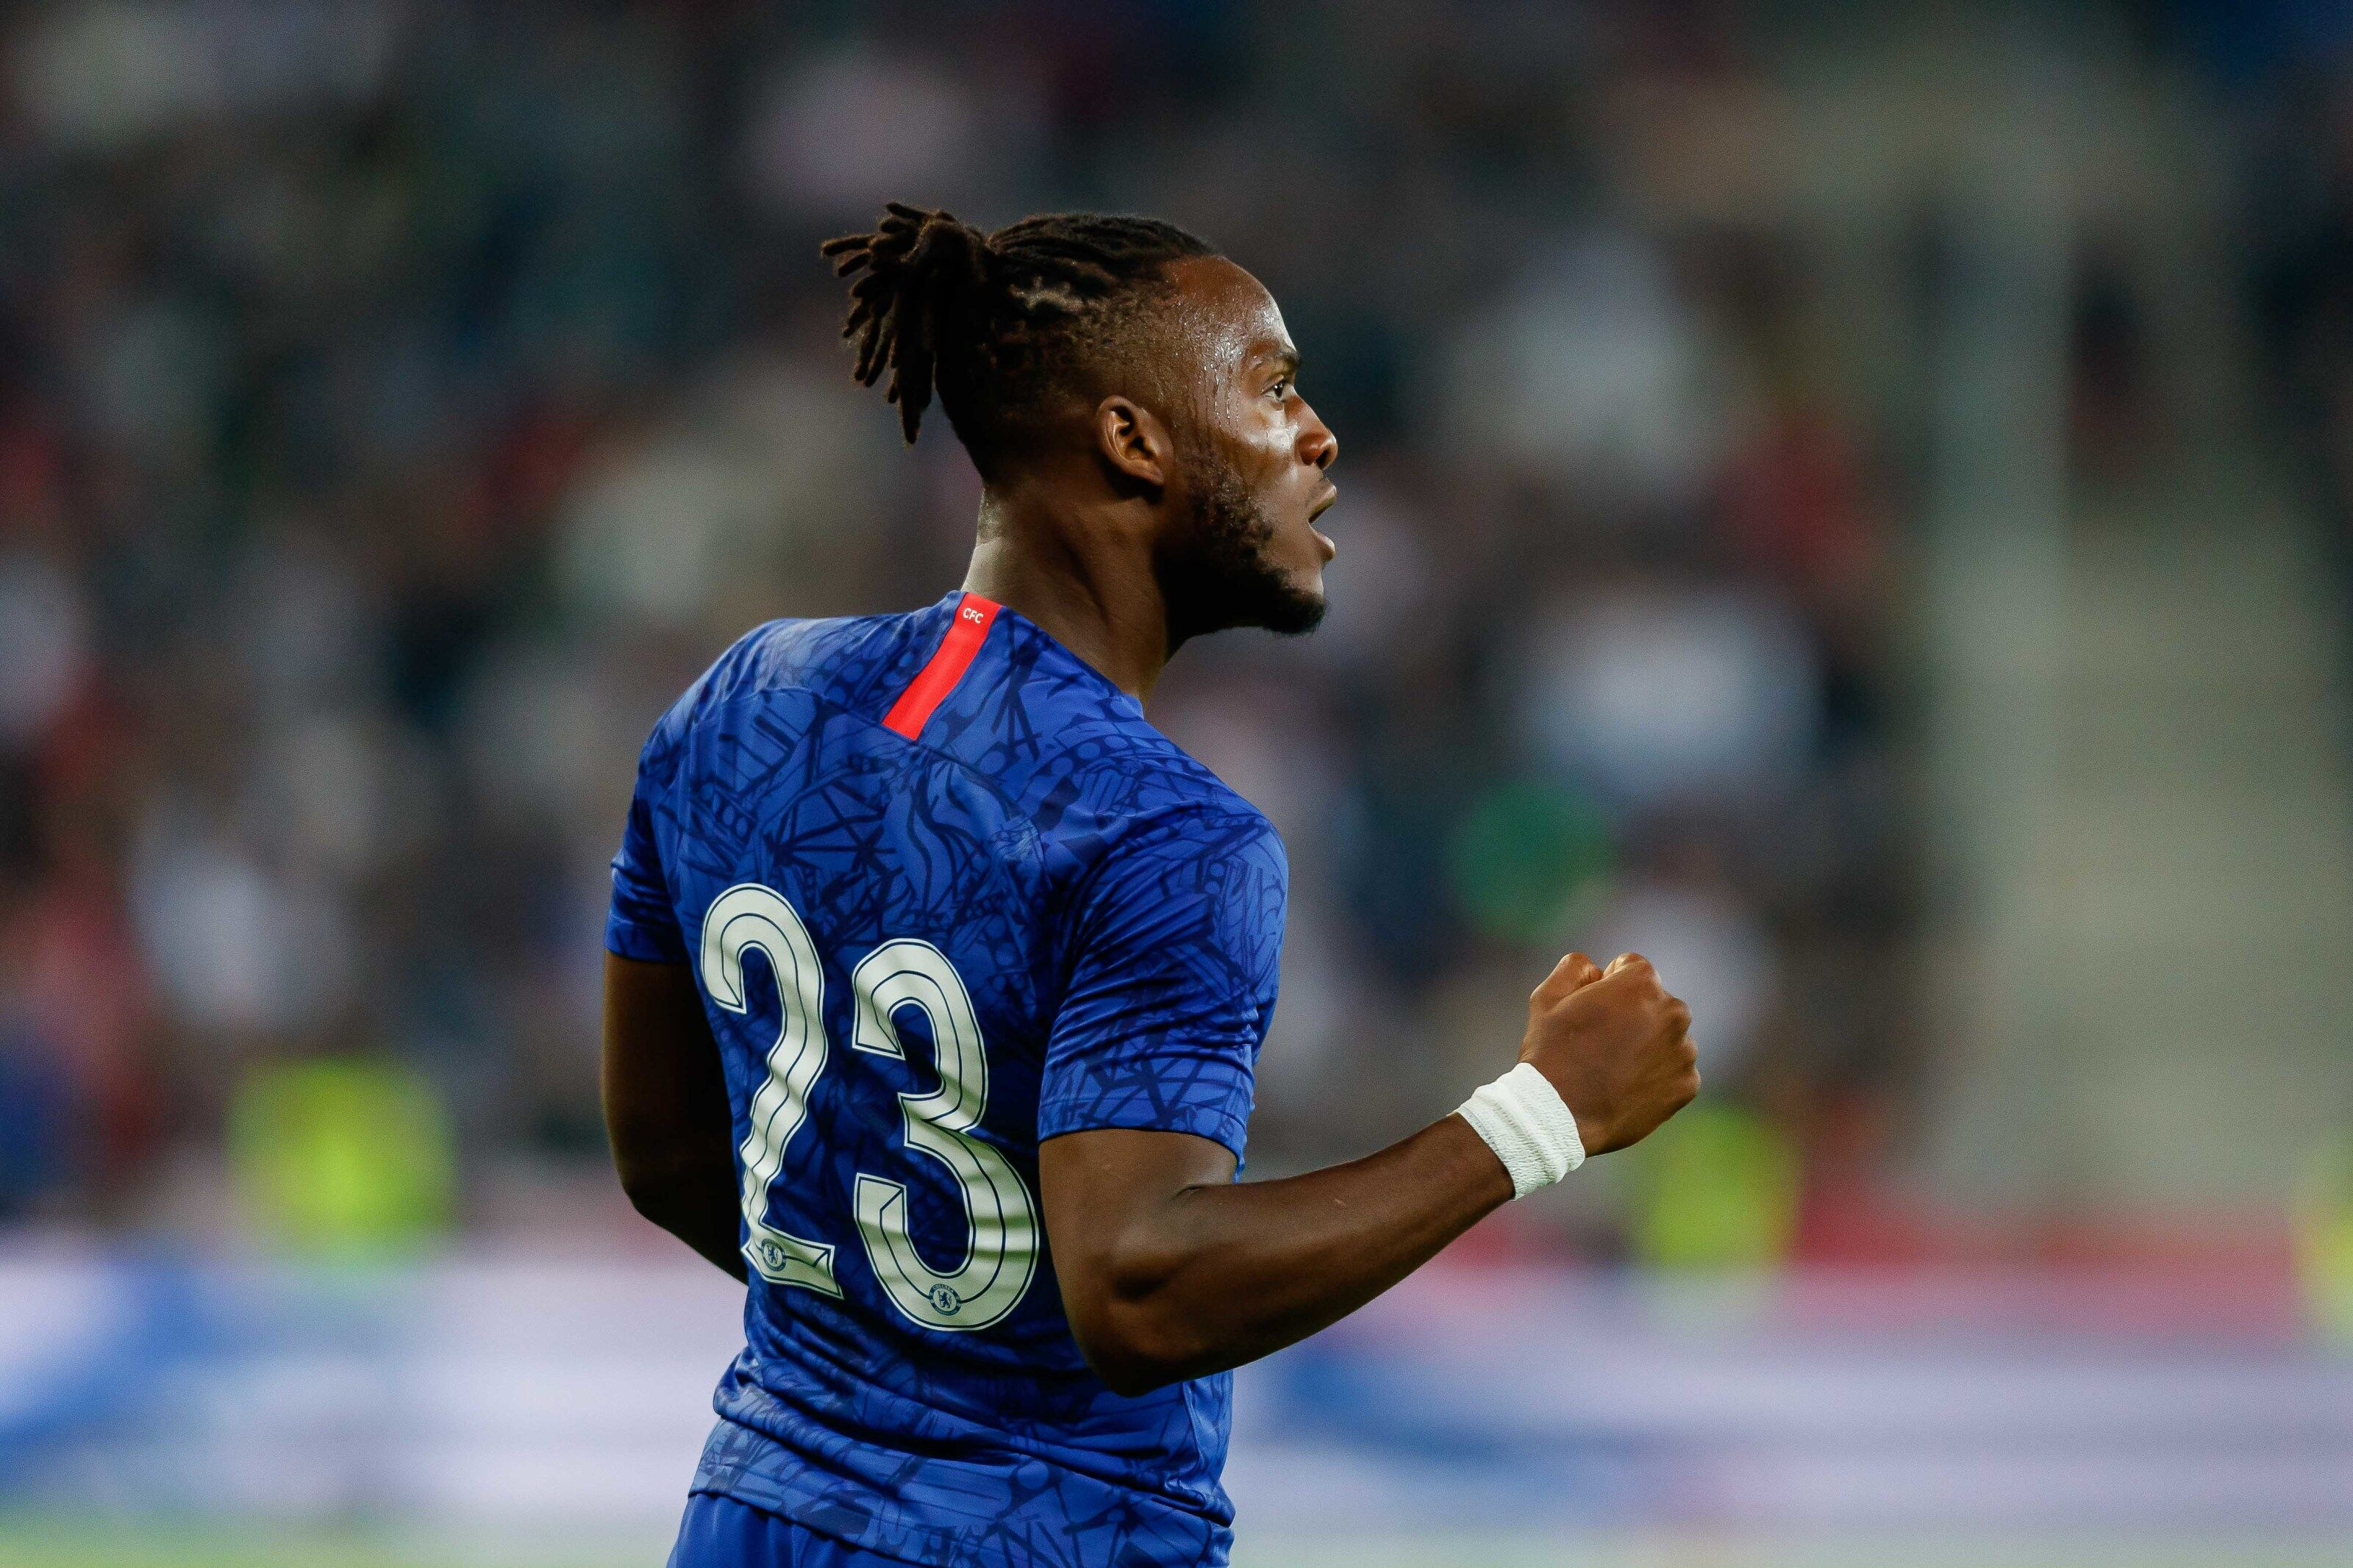 Michy Batshuayi insists that he wants to fight for a spot at Chelsea despite lack of playing time